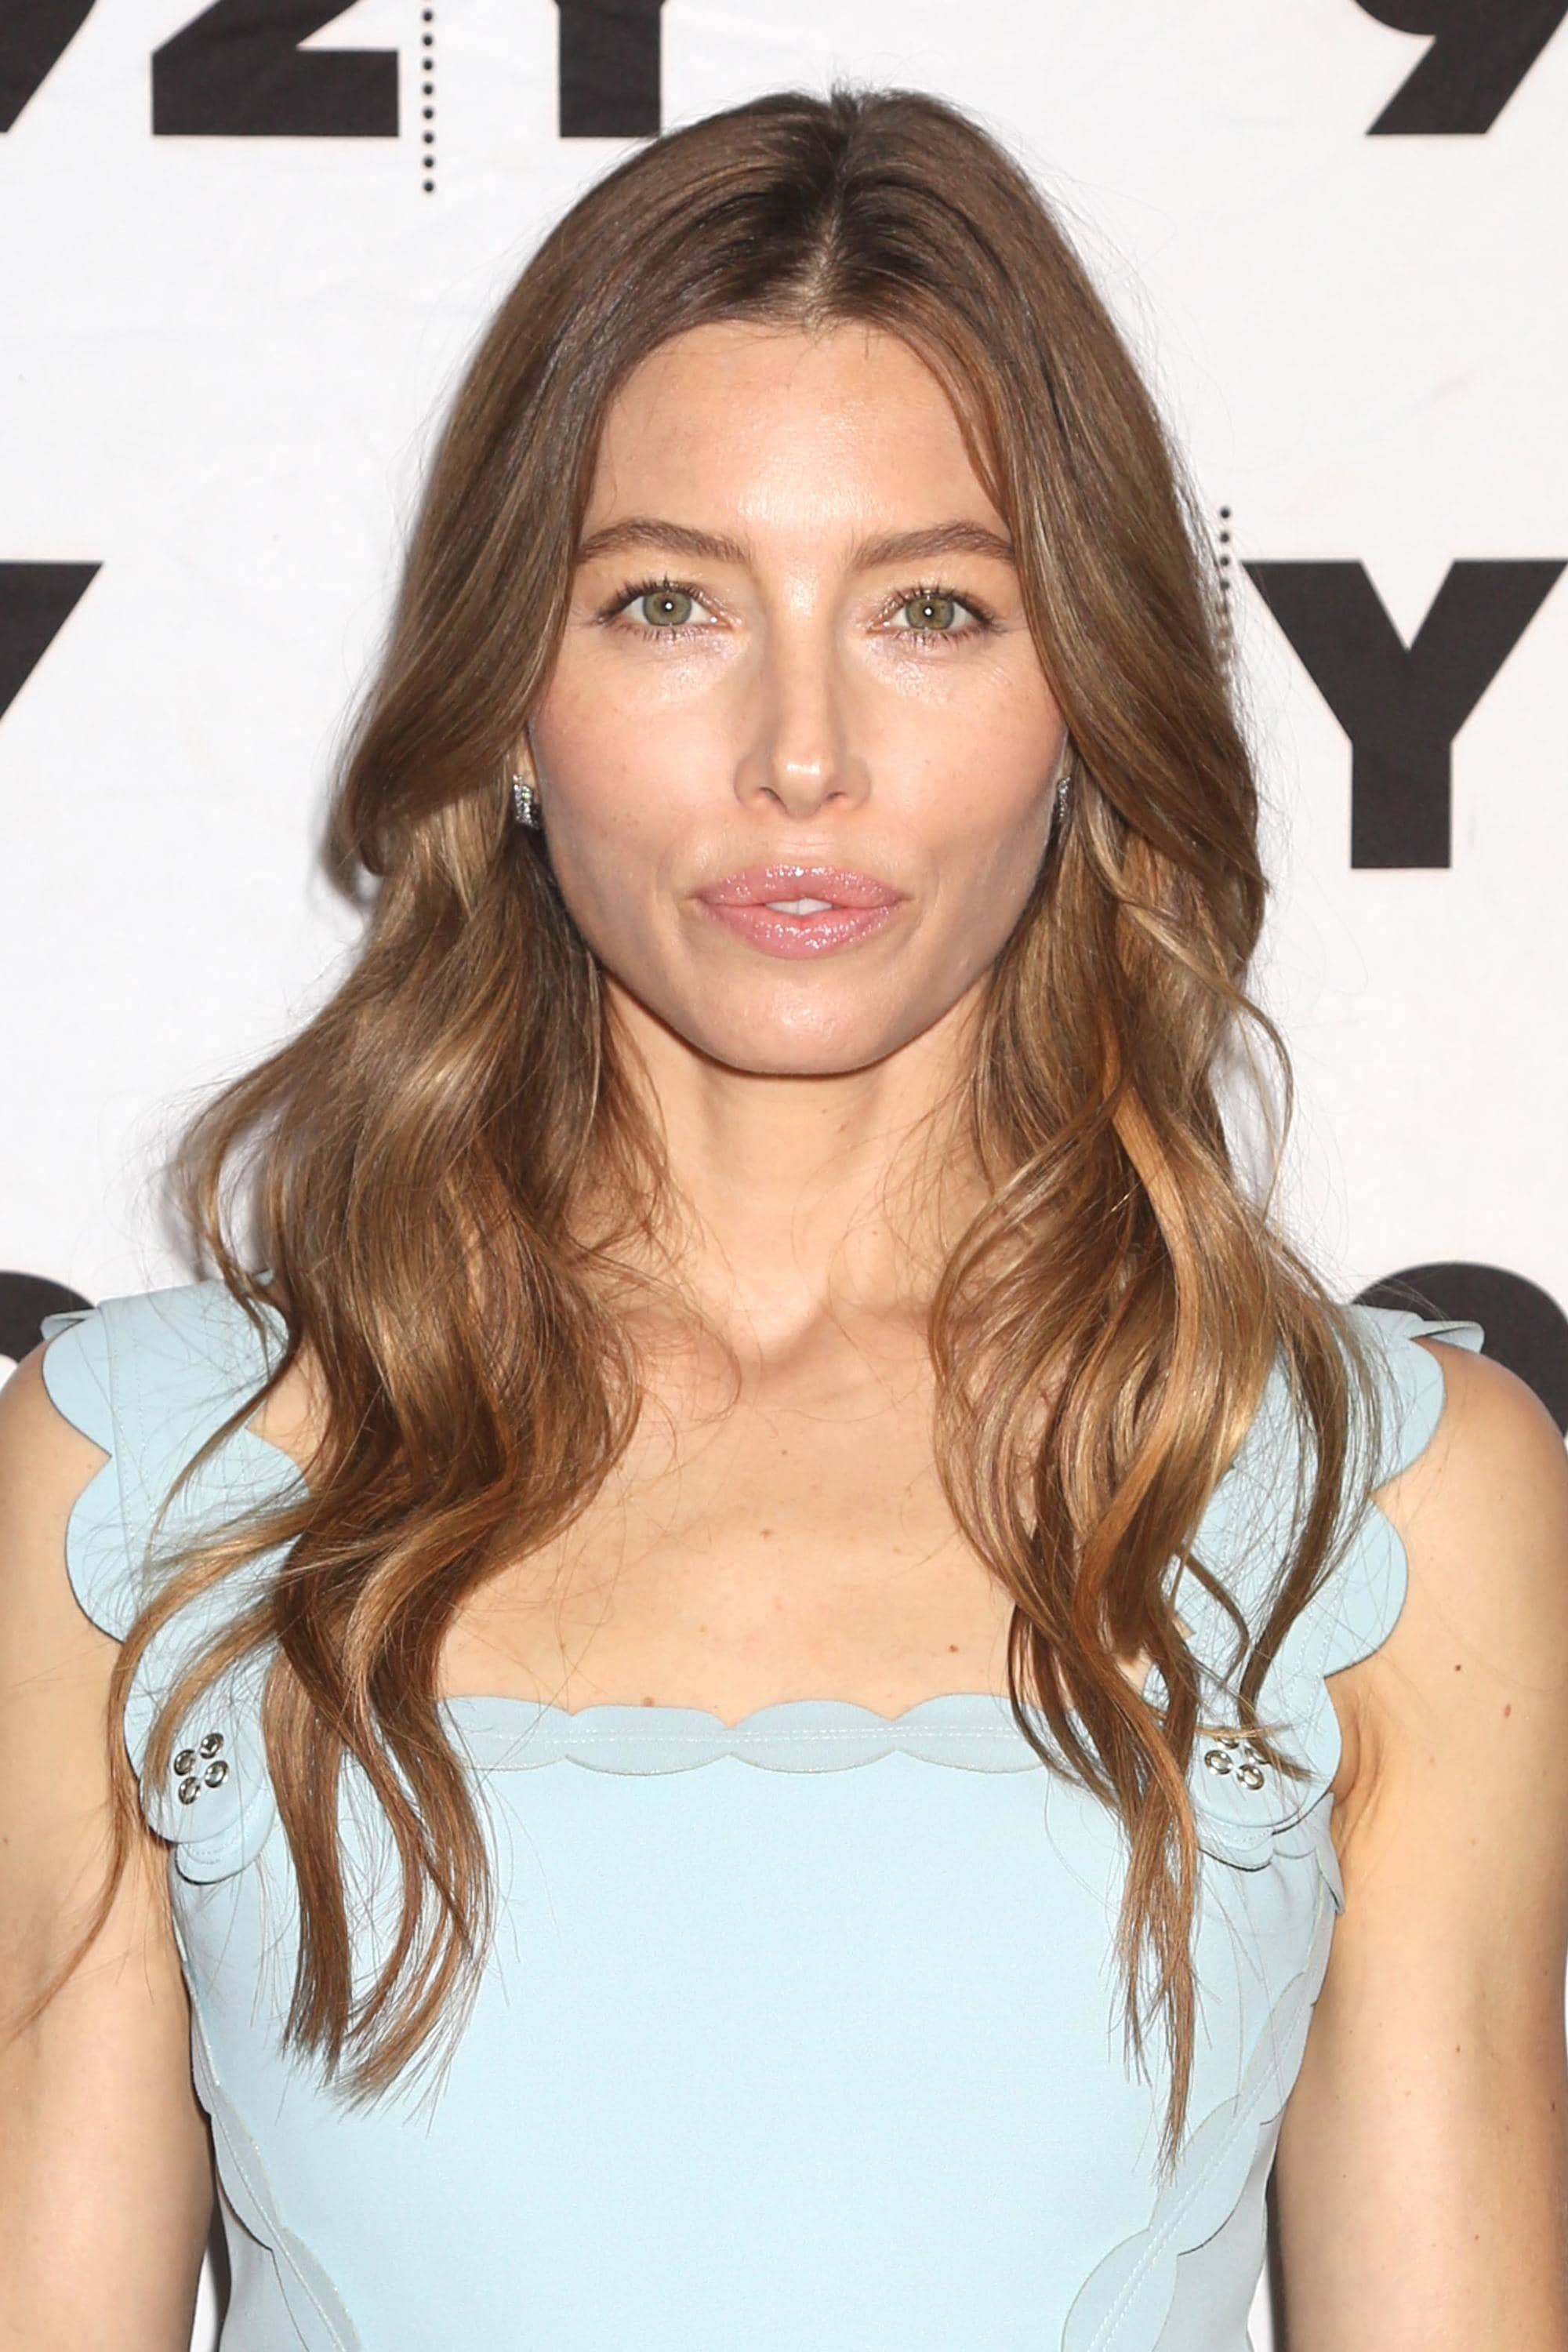 Brown hair with blonde highlights: Jessica Biel with long curled brown hair with highlights, wearing a pastel blue dress